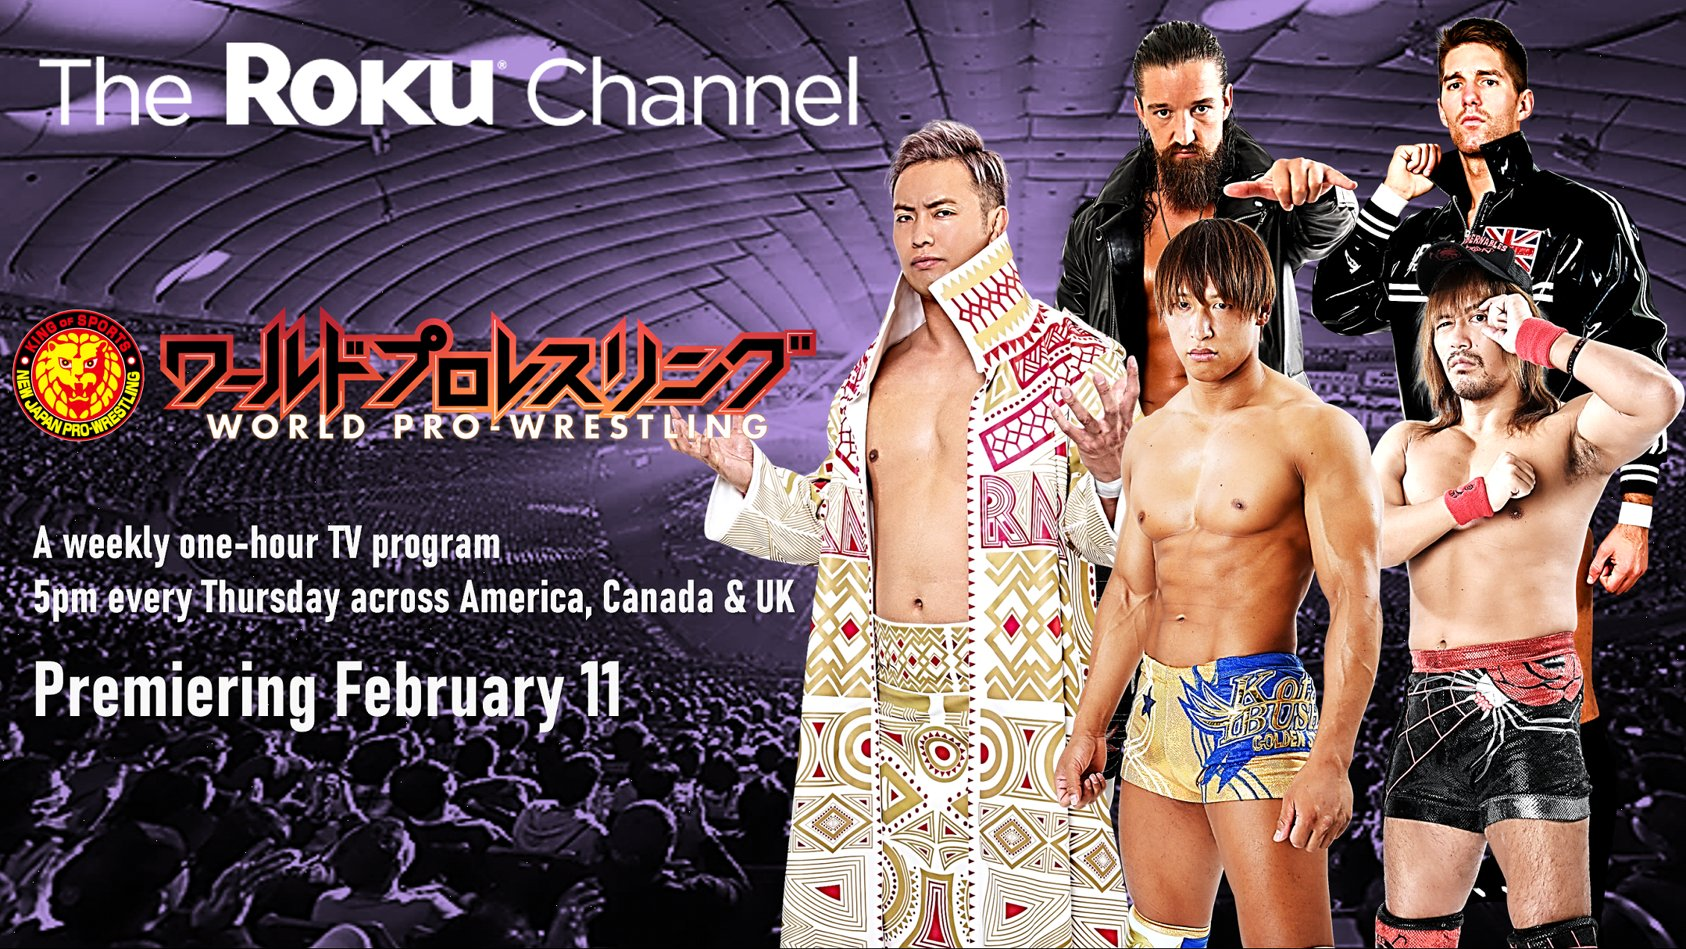 Report On Why NJPW Signed A Deal With Roku Instead Of AXS